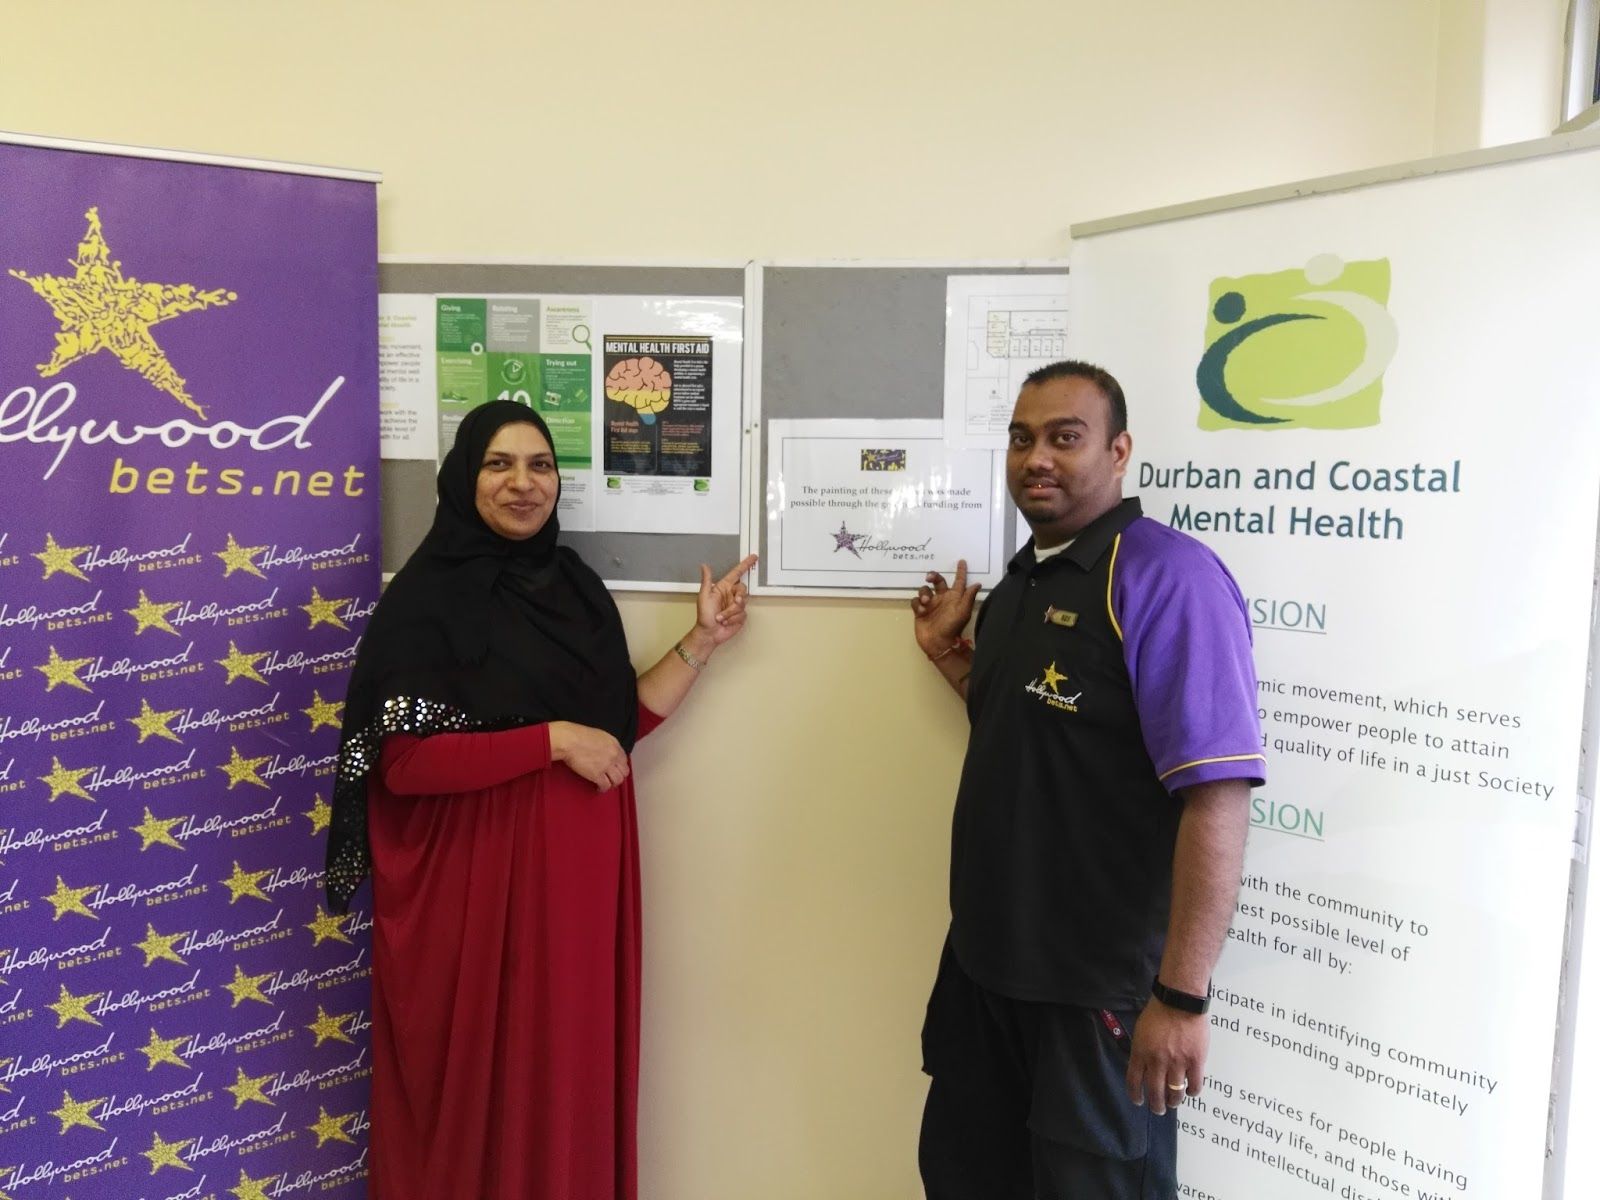 Team members from Hollywoodbets Springfield visited Durban and Coastal Mental Health to repaint their office space